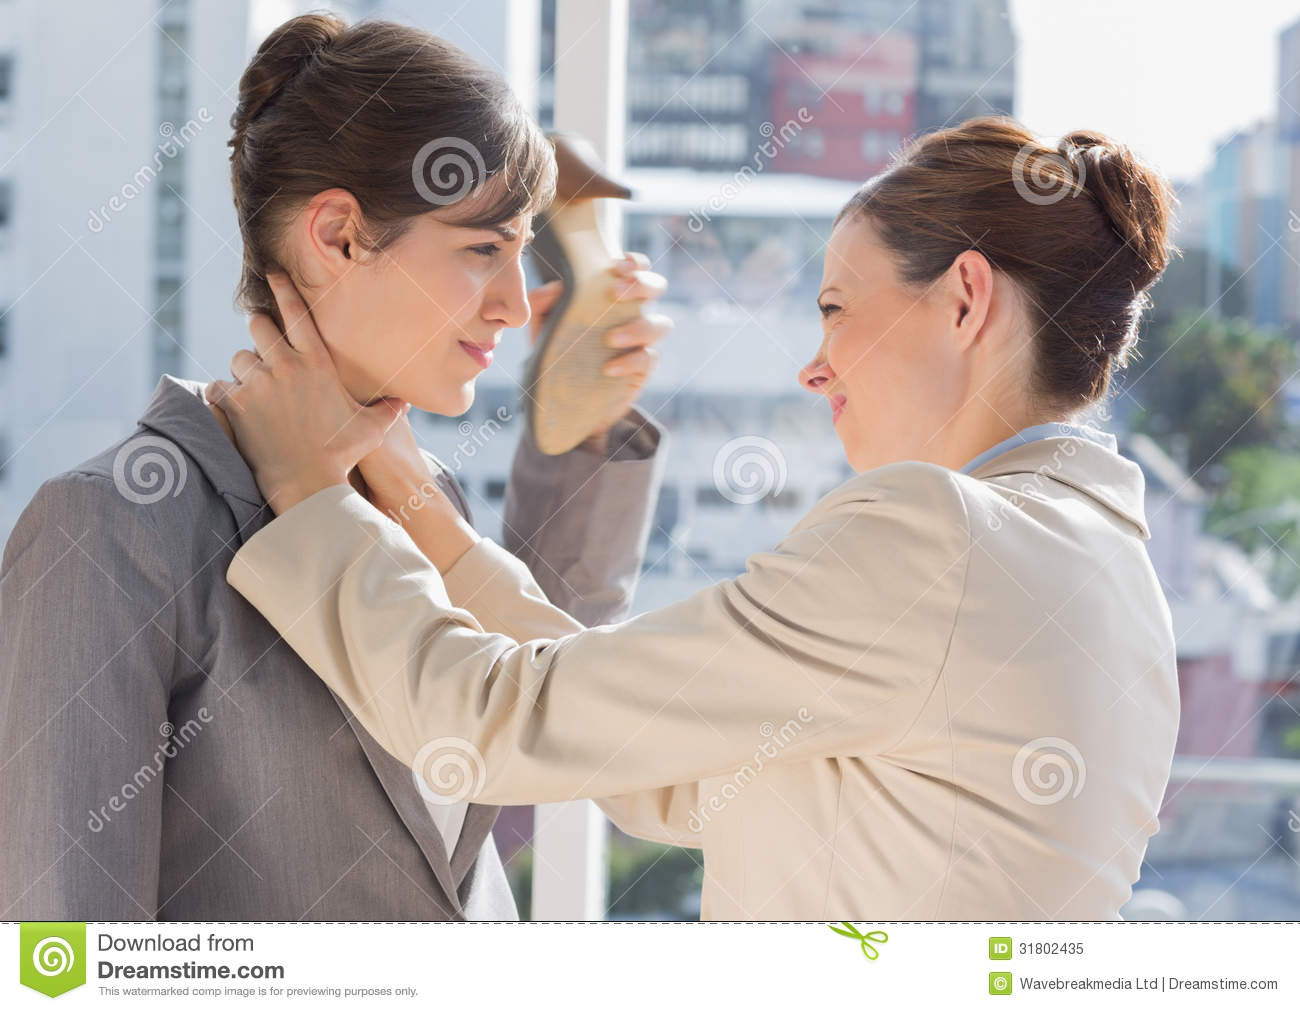 Strangling Her Businesswoman strangling her partner stock images ...